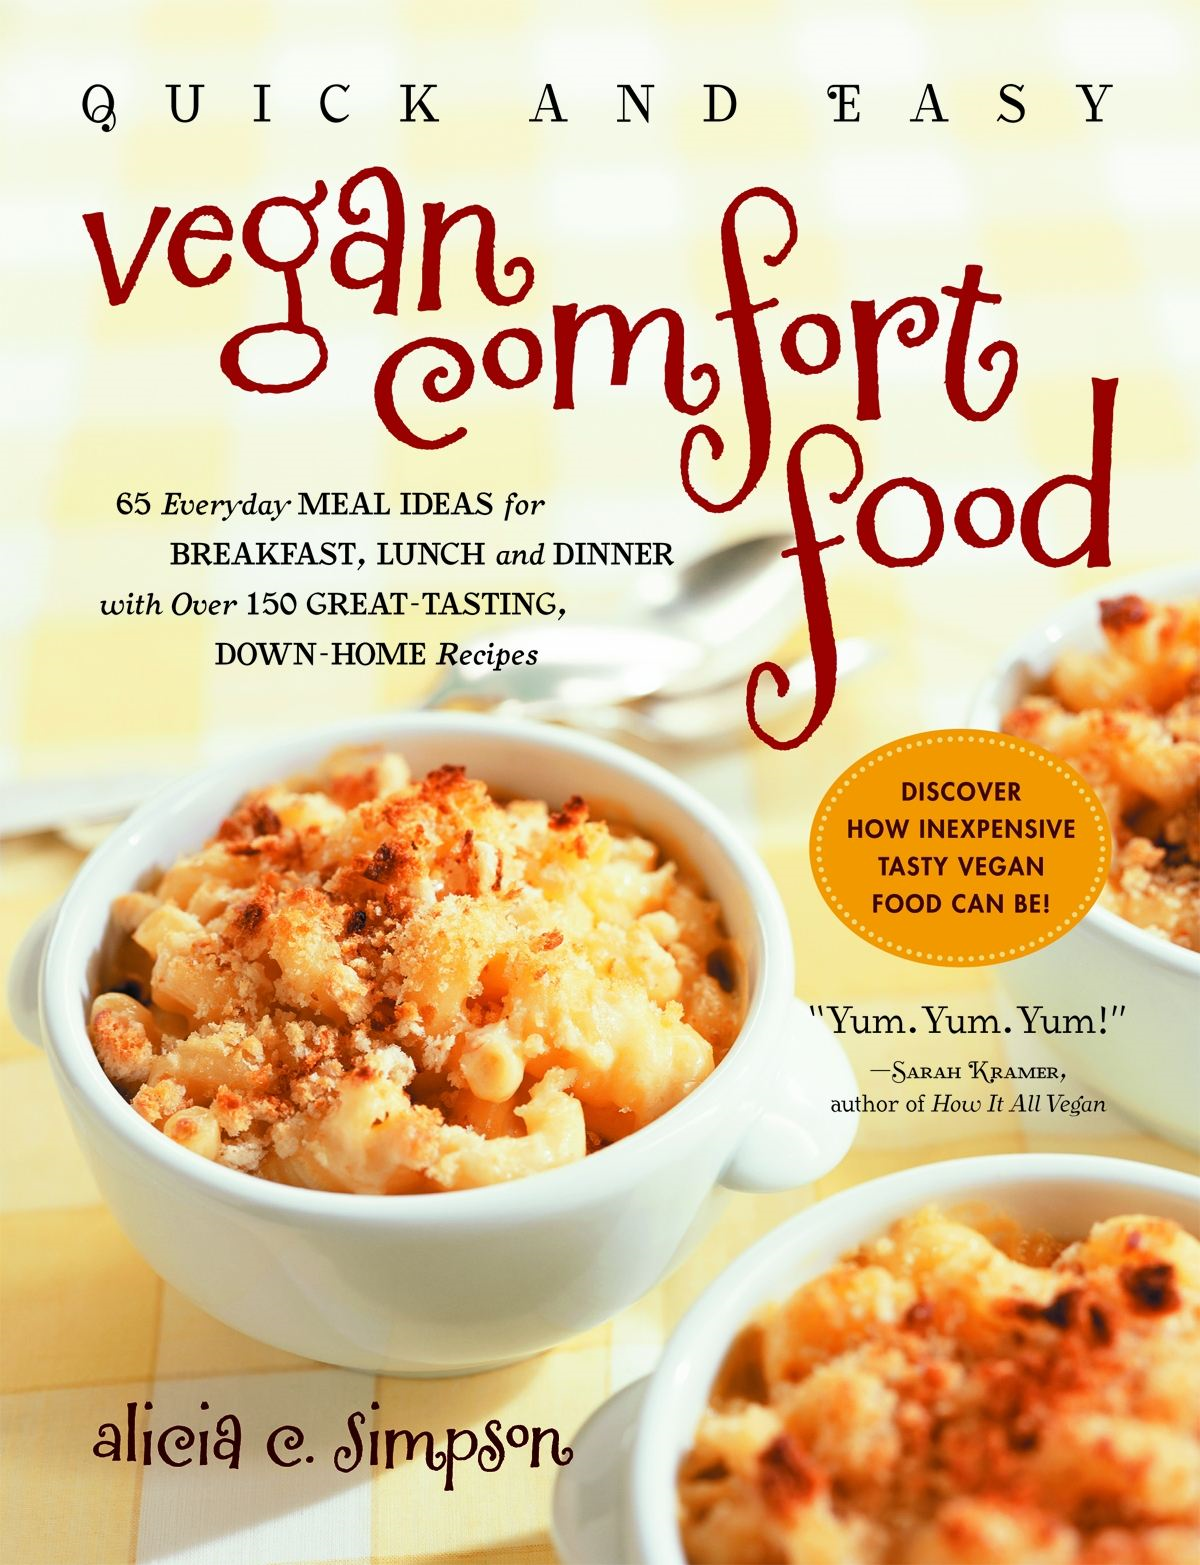 Quick & Easy Vegan Comfort Food By: Alicia C. Simpson